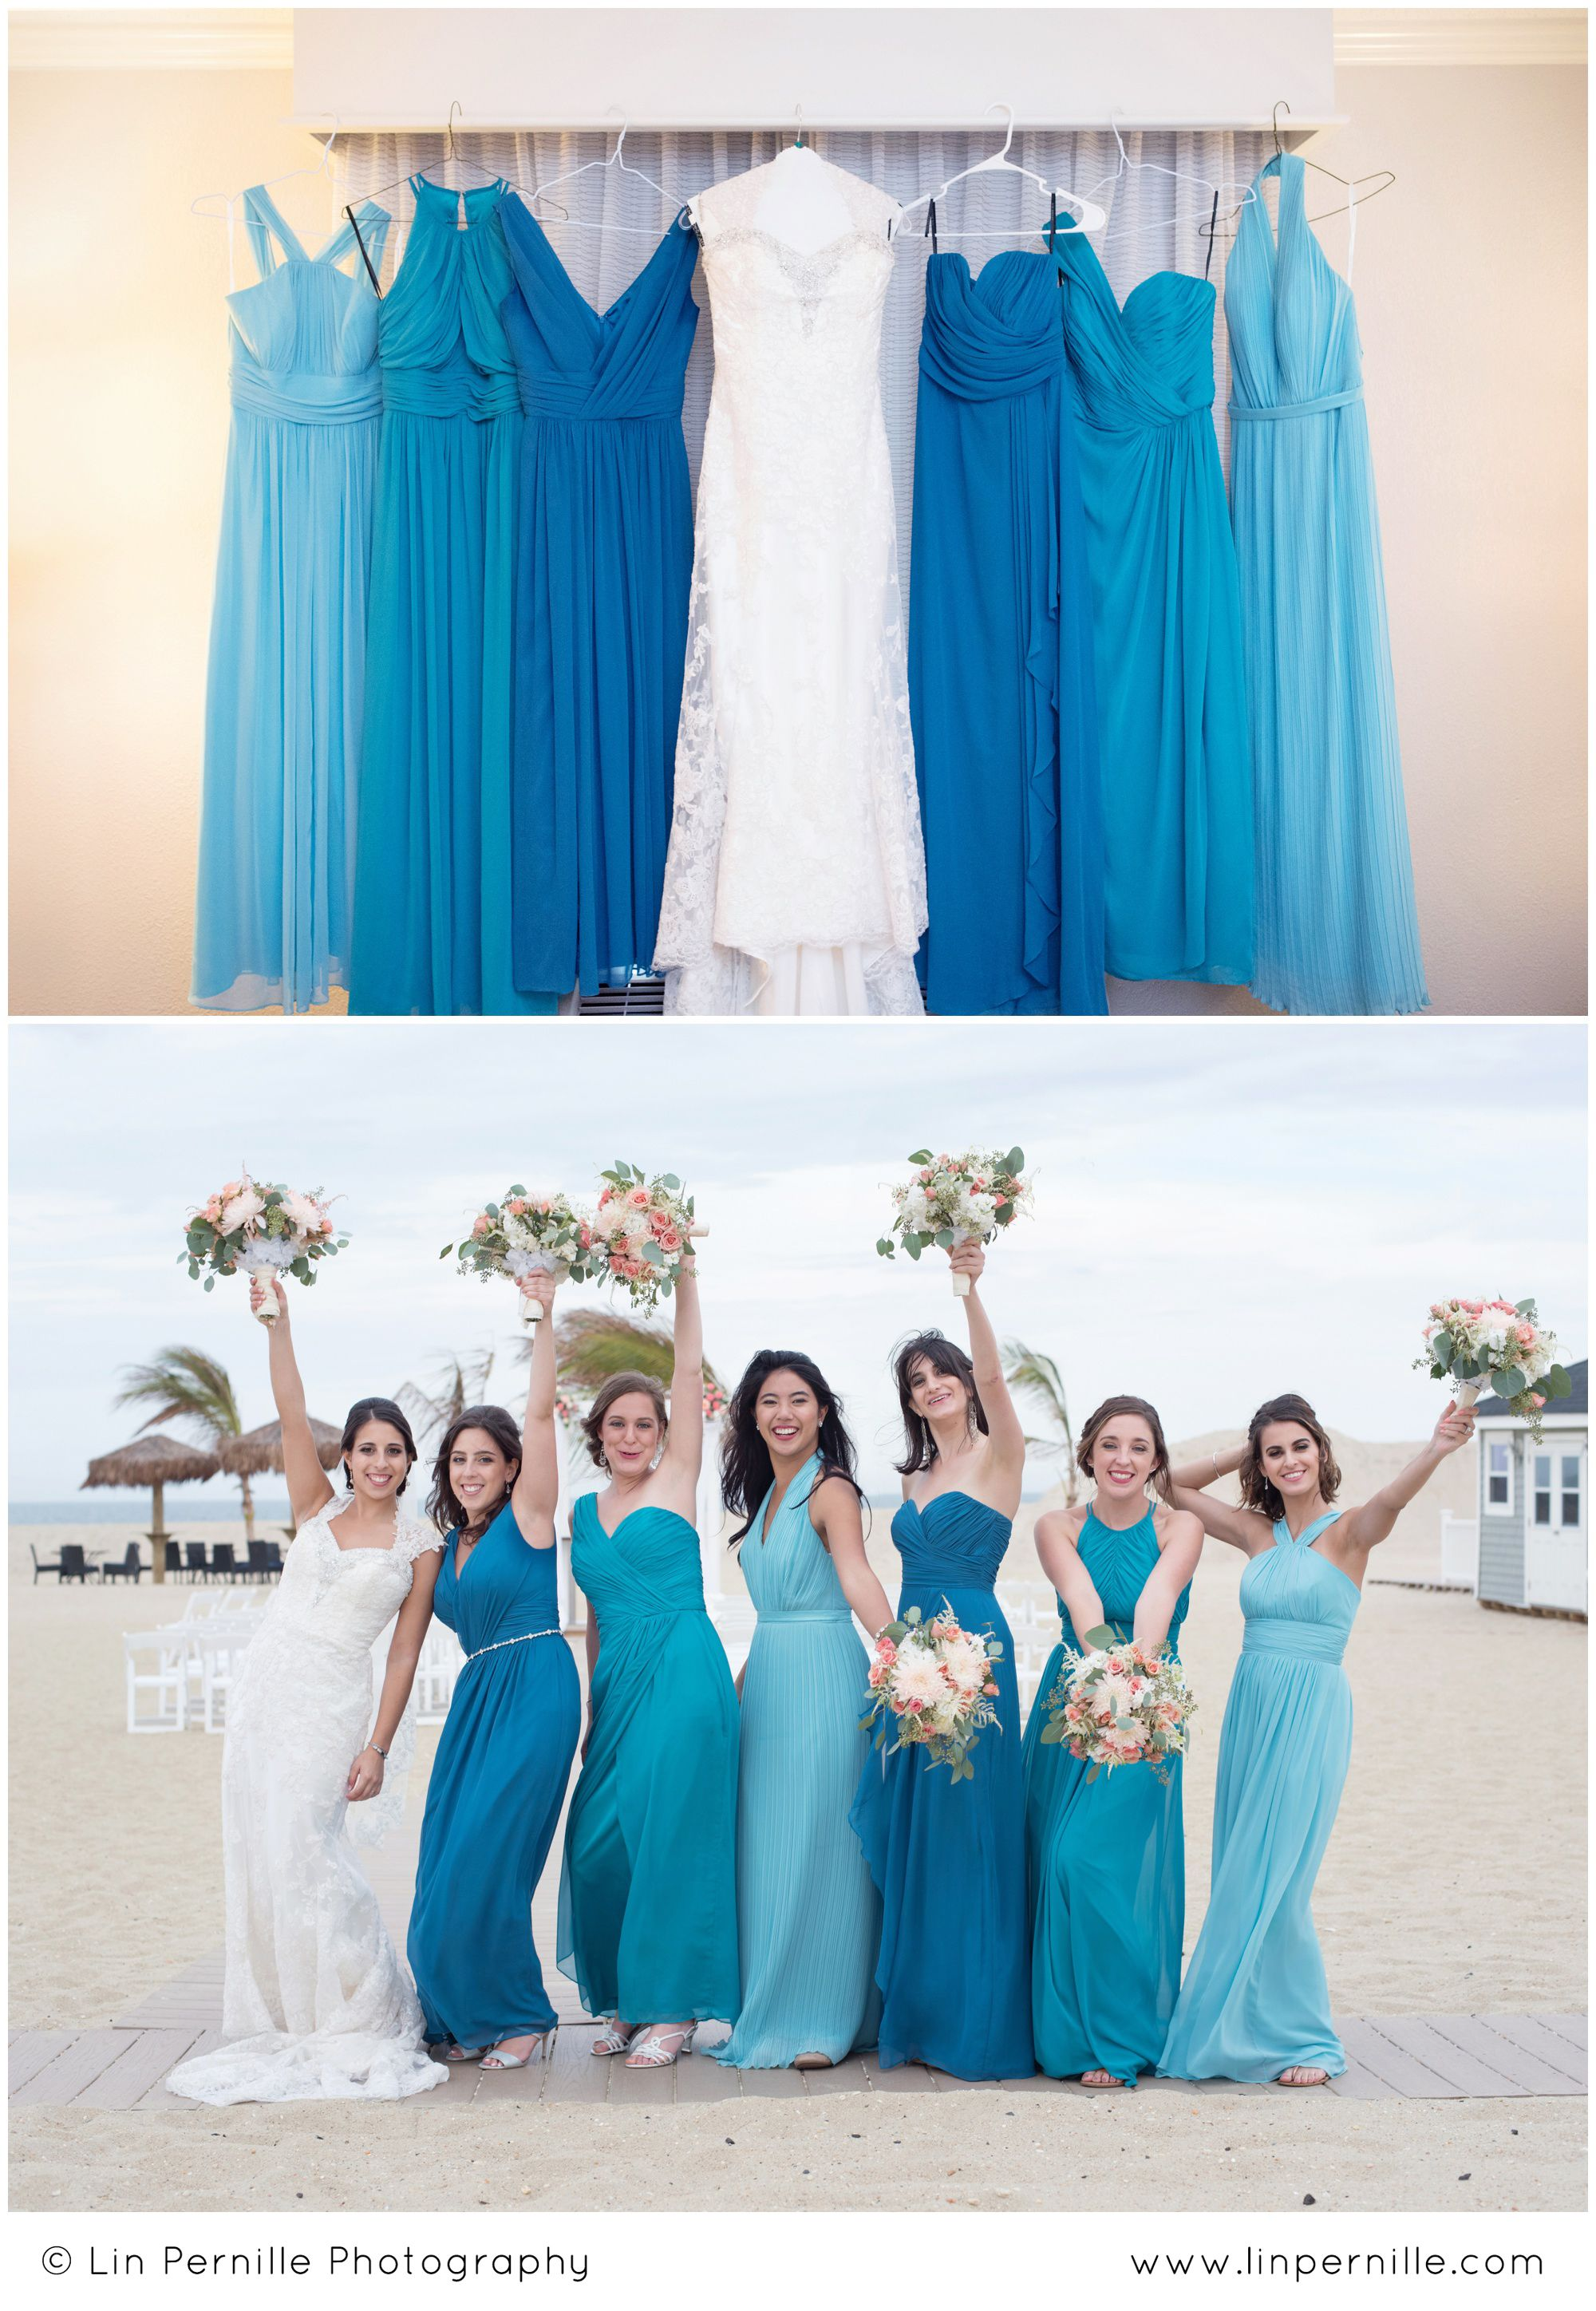 c13a22e9323fe I LOVE mismatched bridesmaid dresses! These monochromatic shades of blue  are PERFECT for a beach wedding. • Mismatched Bridesmaid Dresses •  Mismatches ...